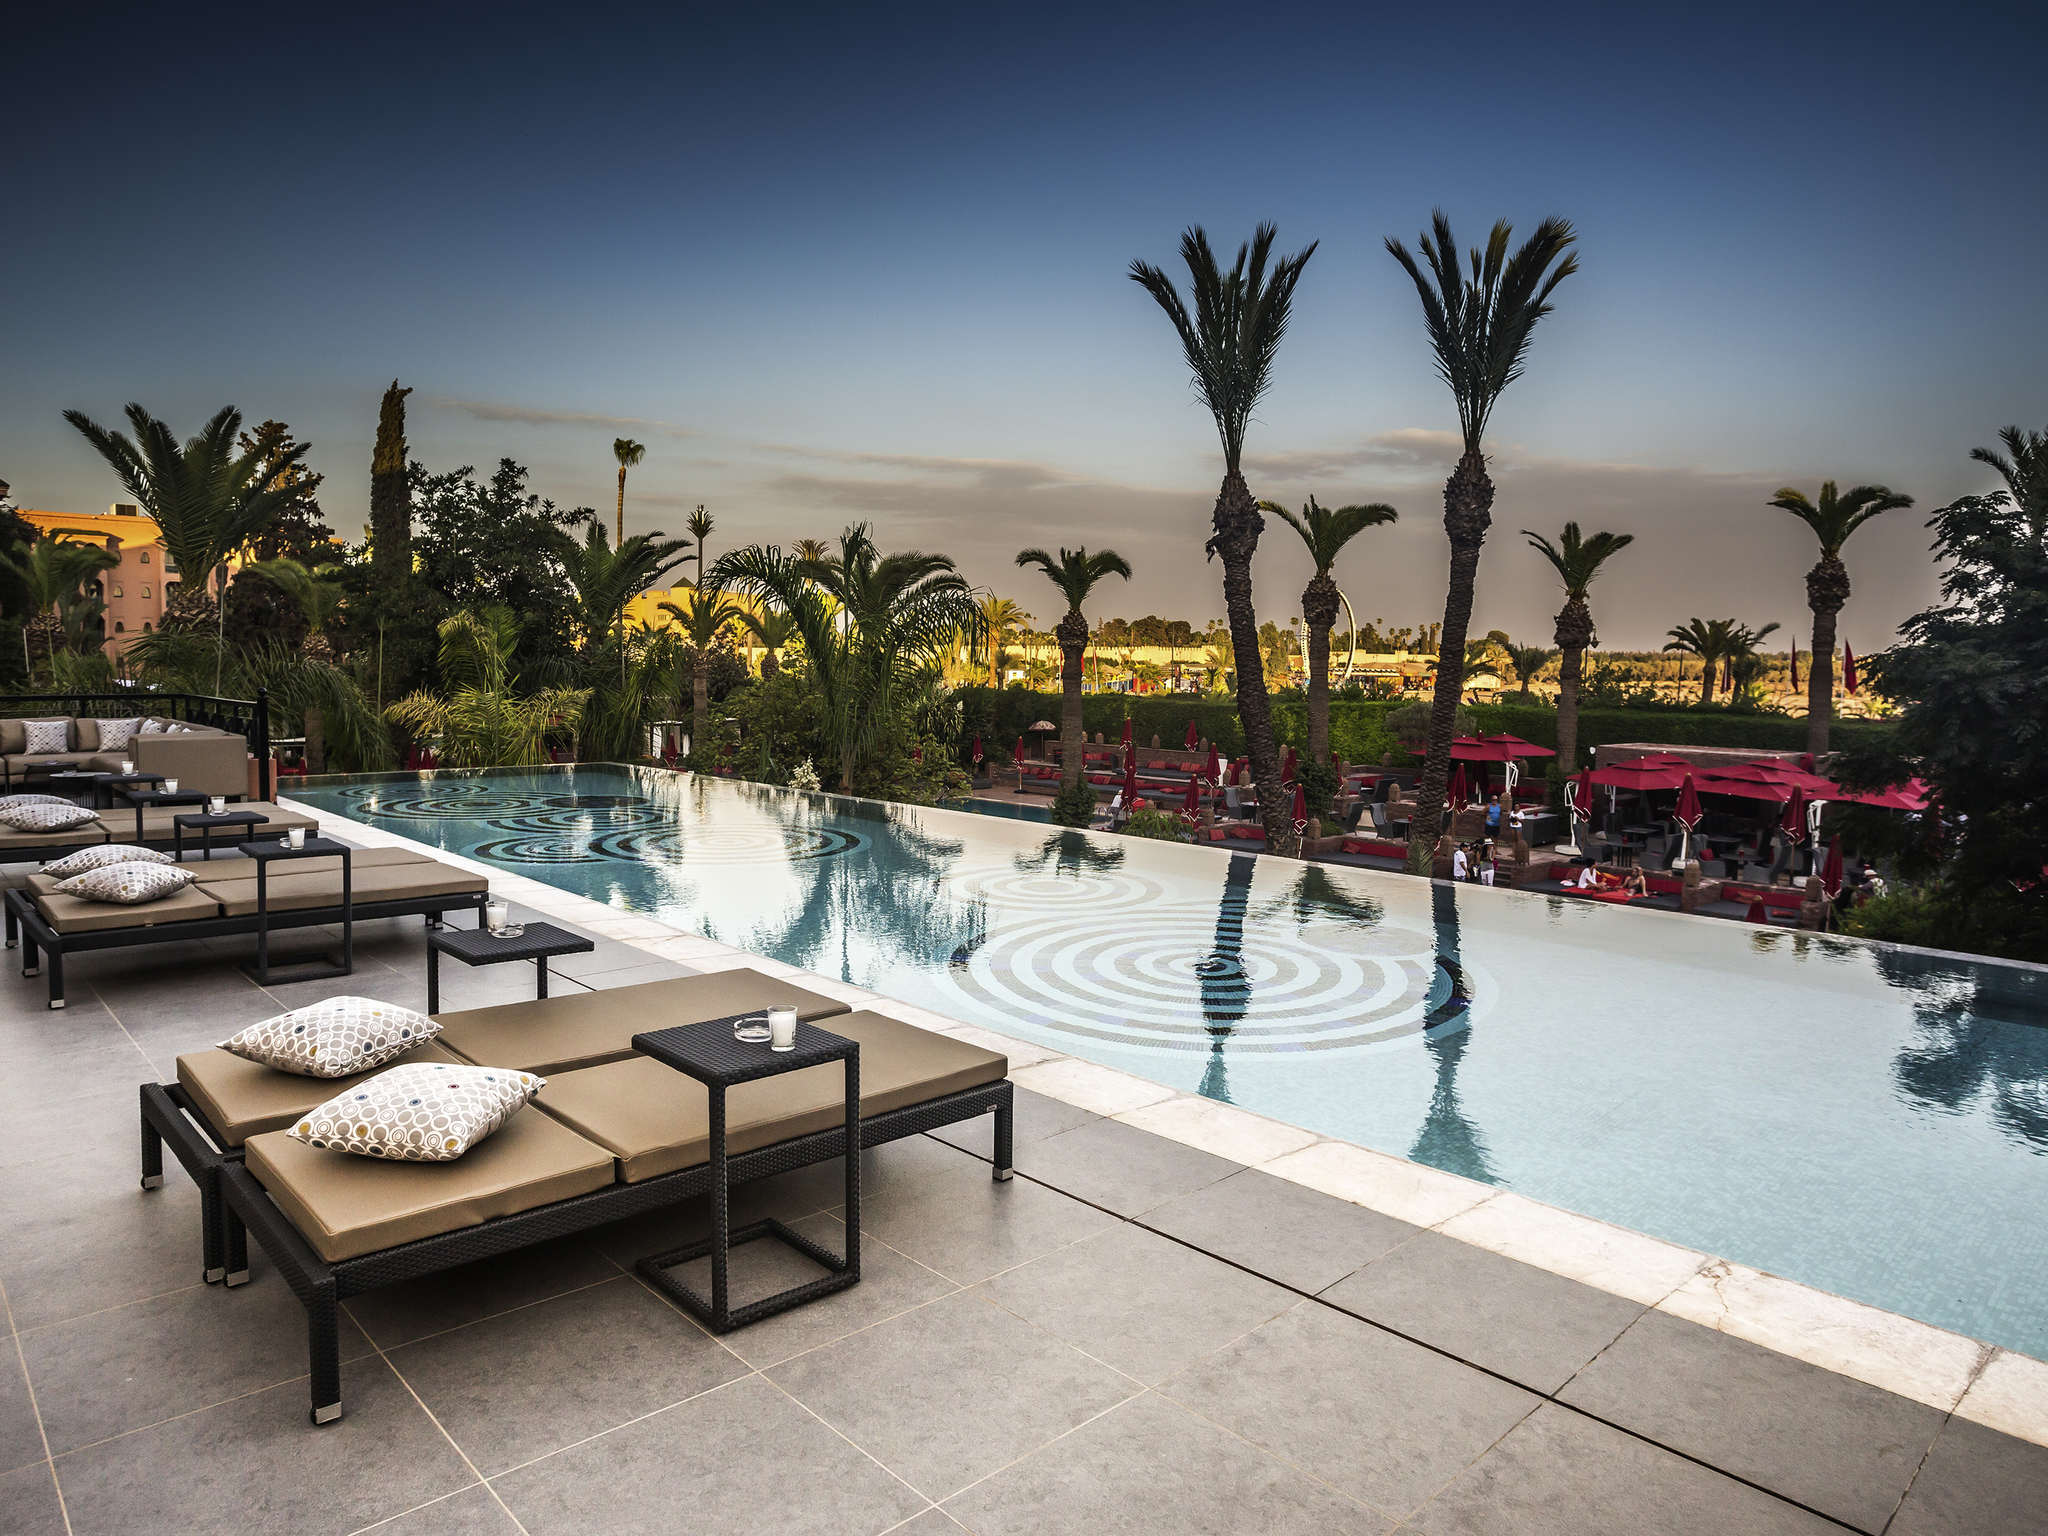 Hotel in MARRAKECH Sofitel Marrakech Lounge and Spa